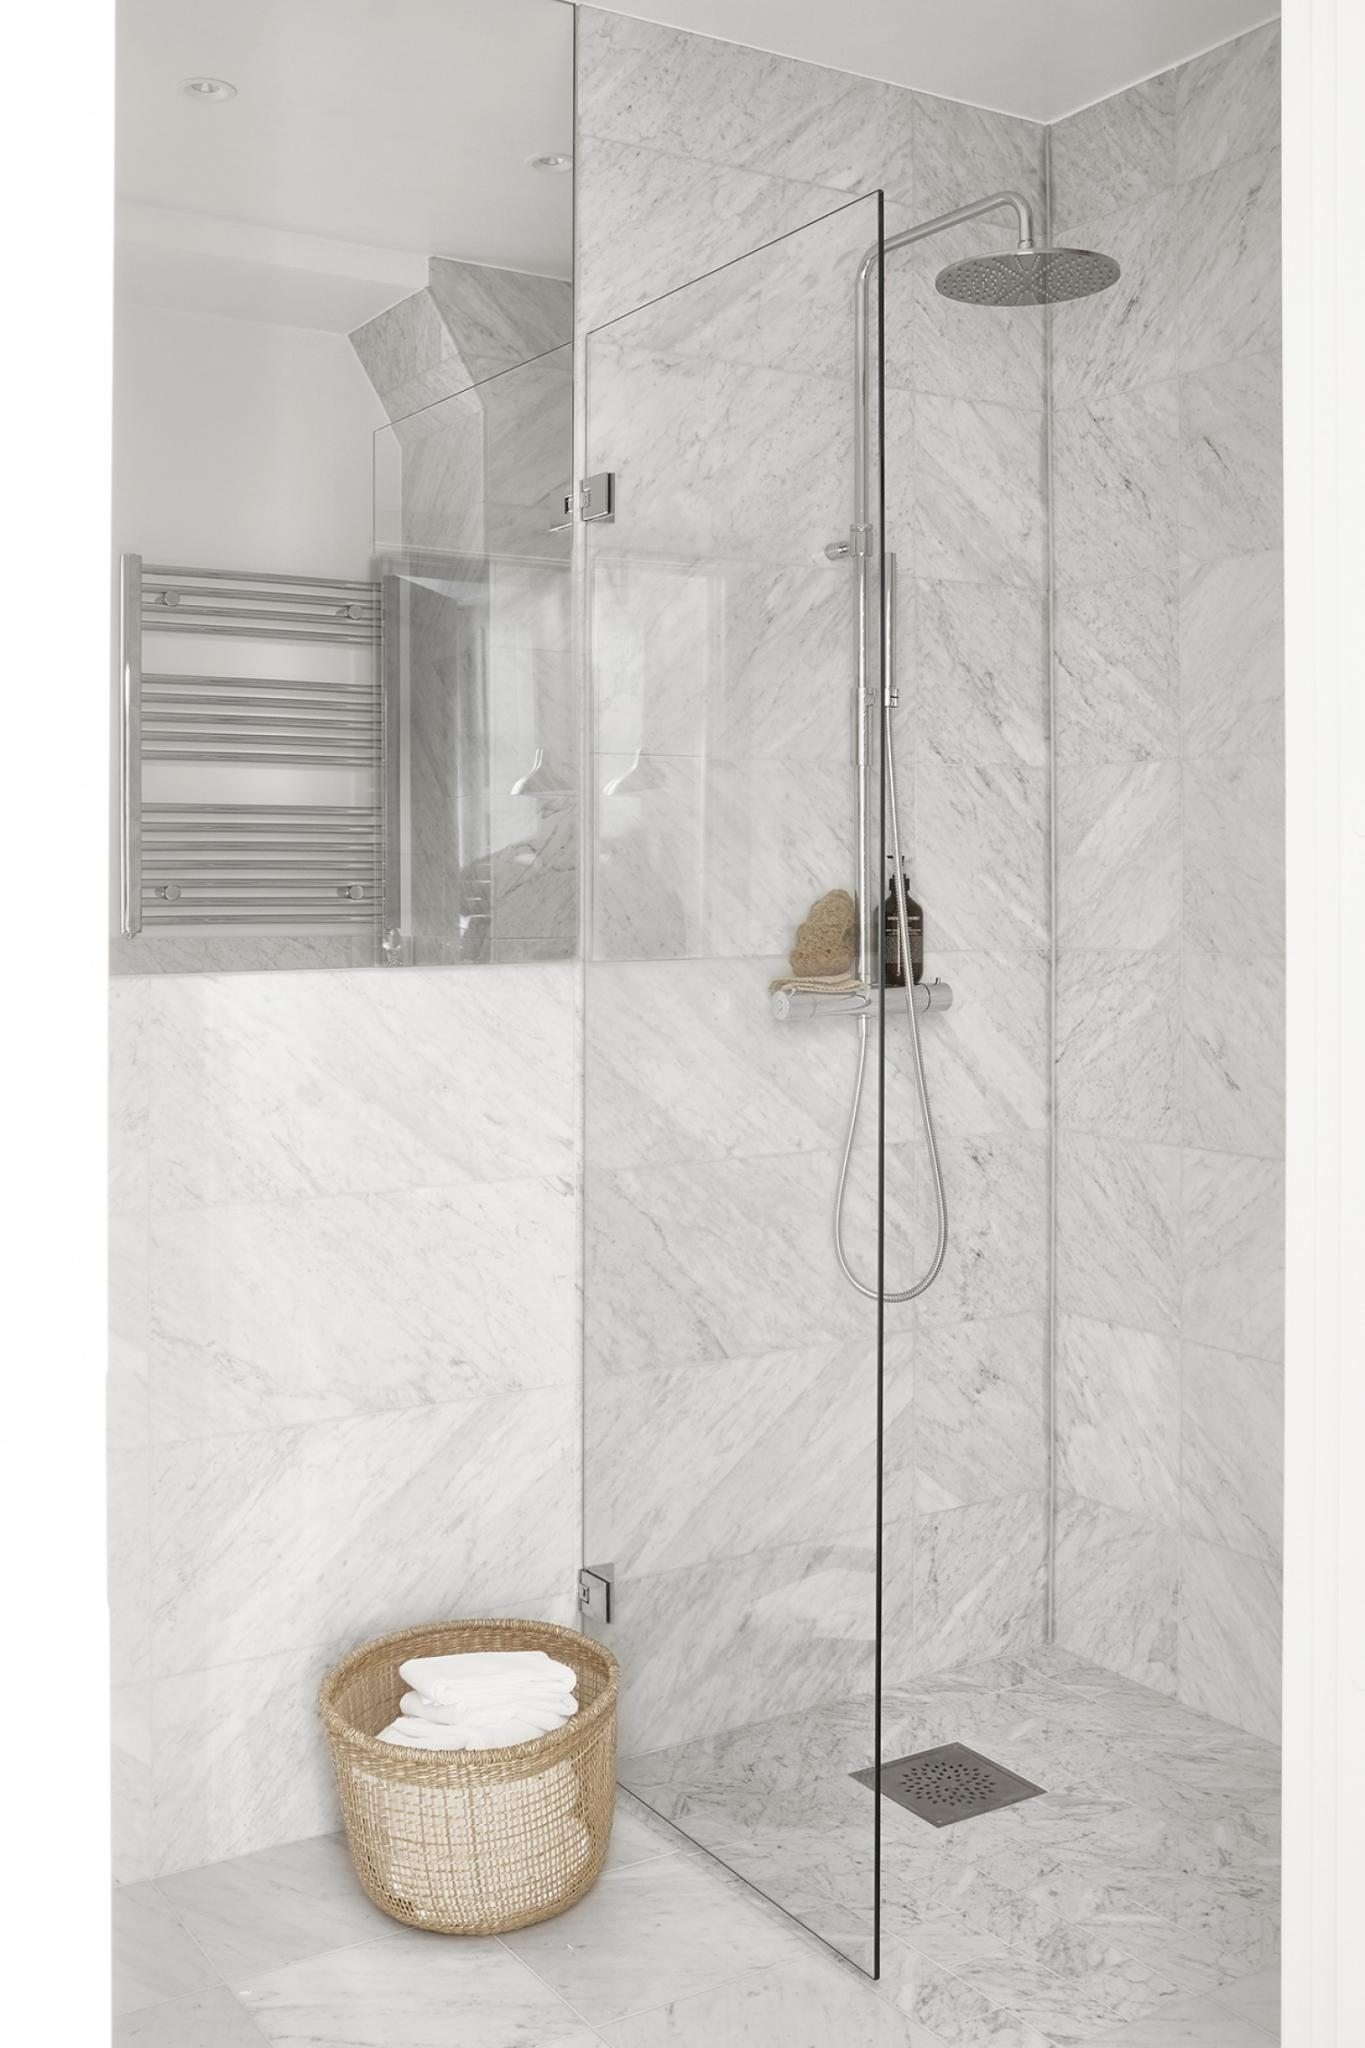 Bathroom shower with marble. Small Stockholm apartment decor inspiration.